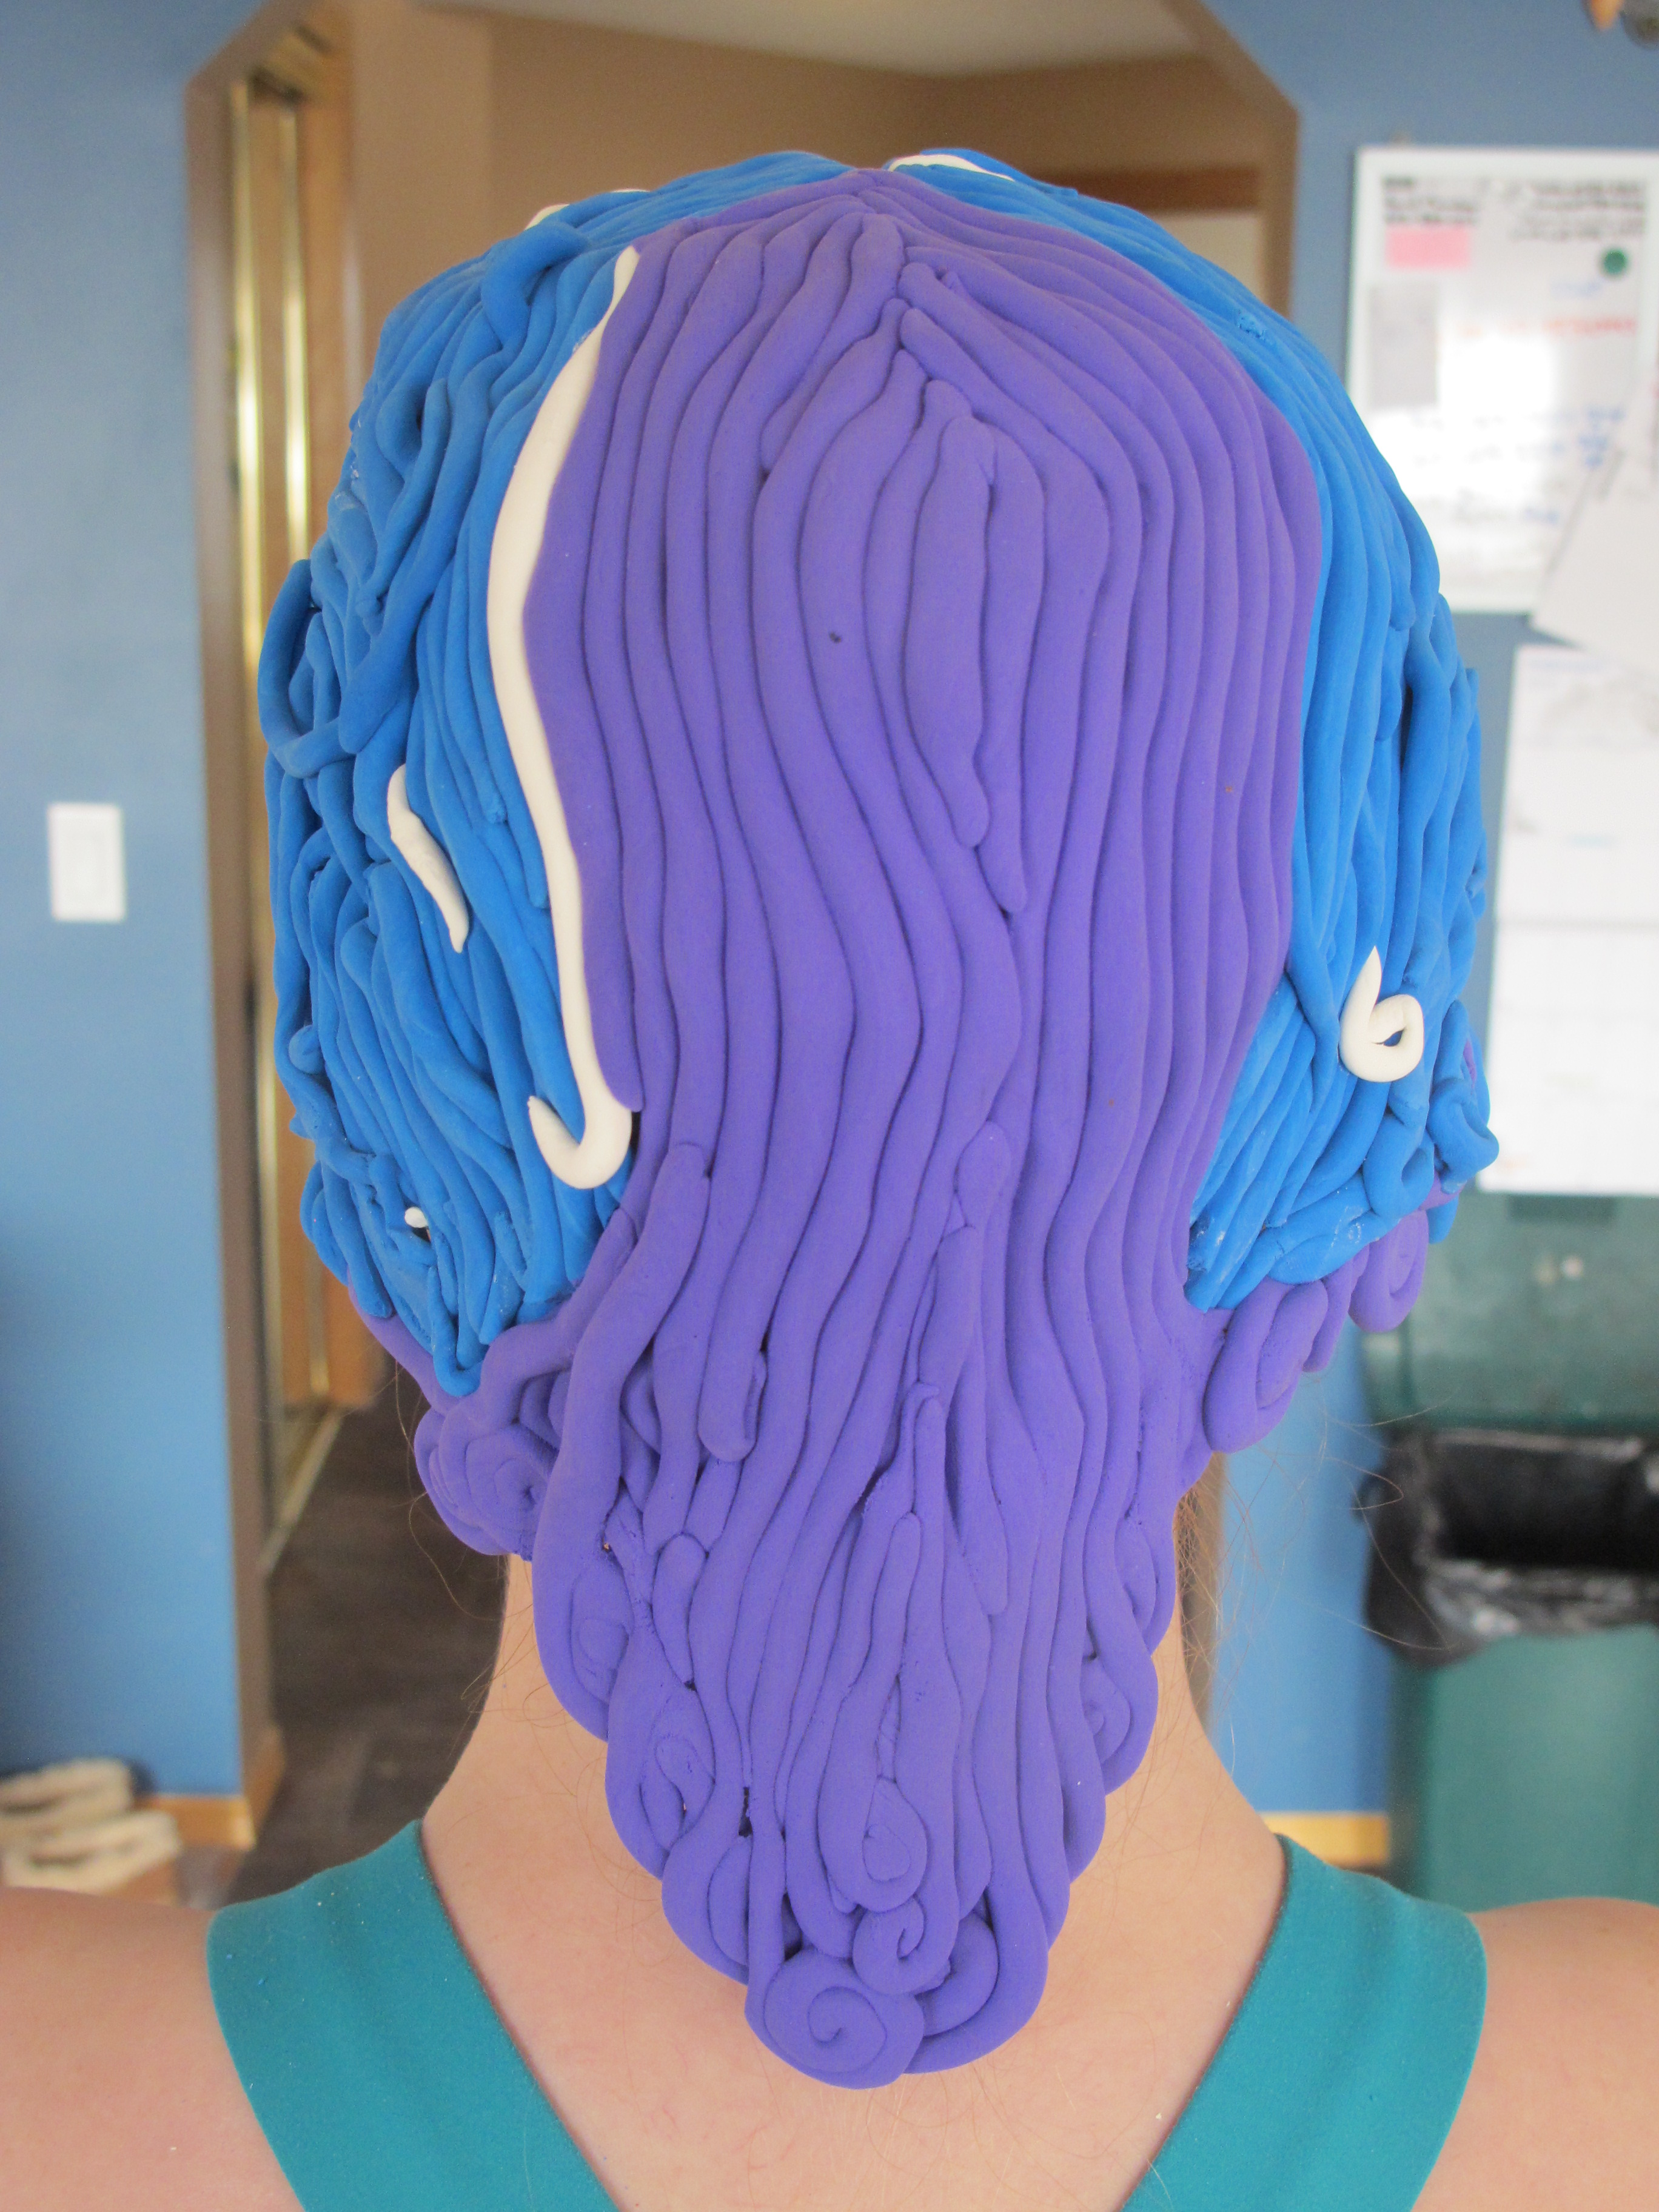 Picture of The Head Piece - Part 1